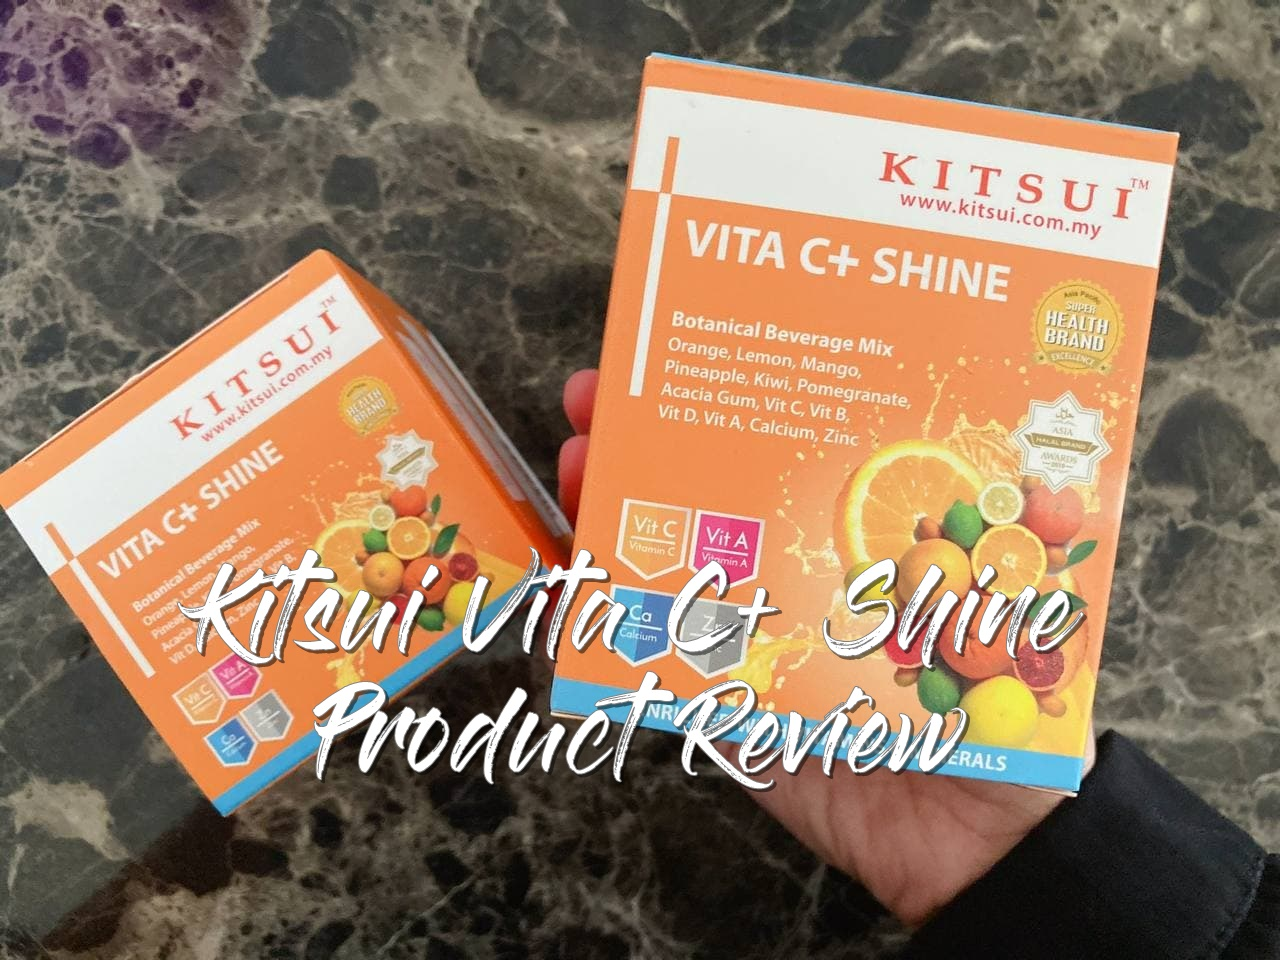 Kitsui Vitamin C Shine Product Review!